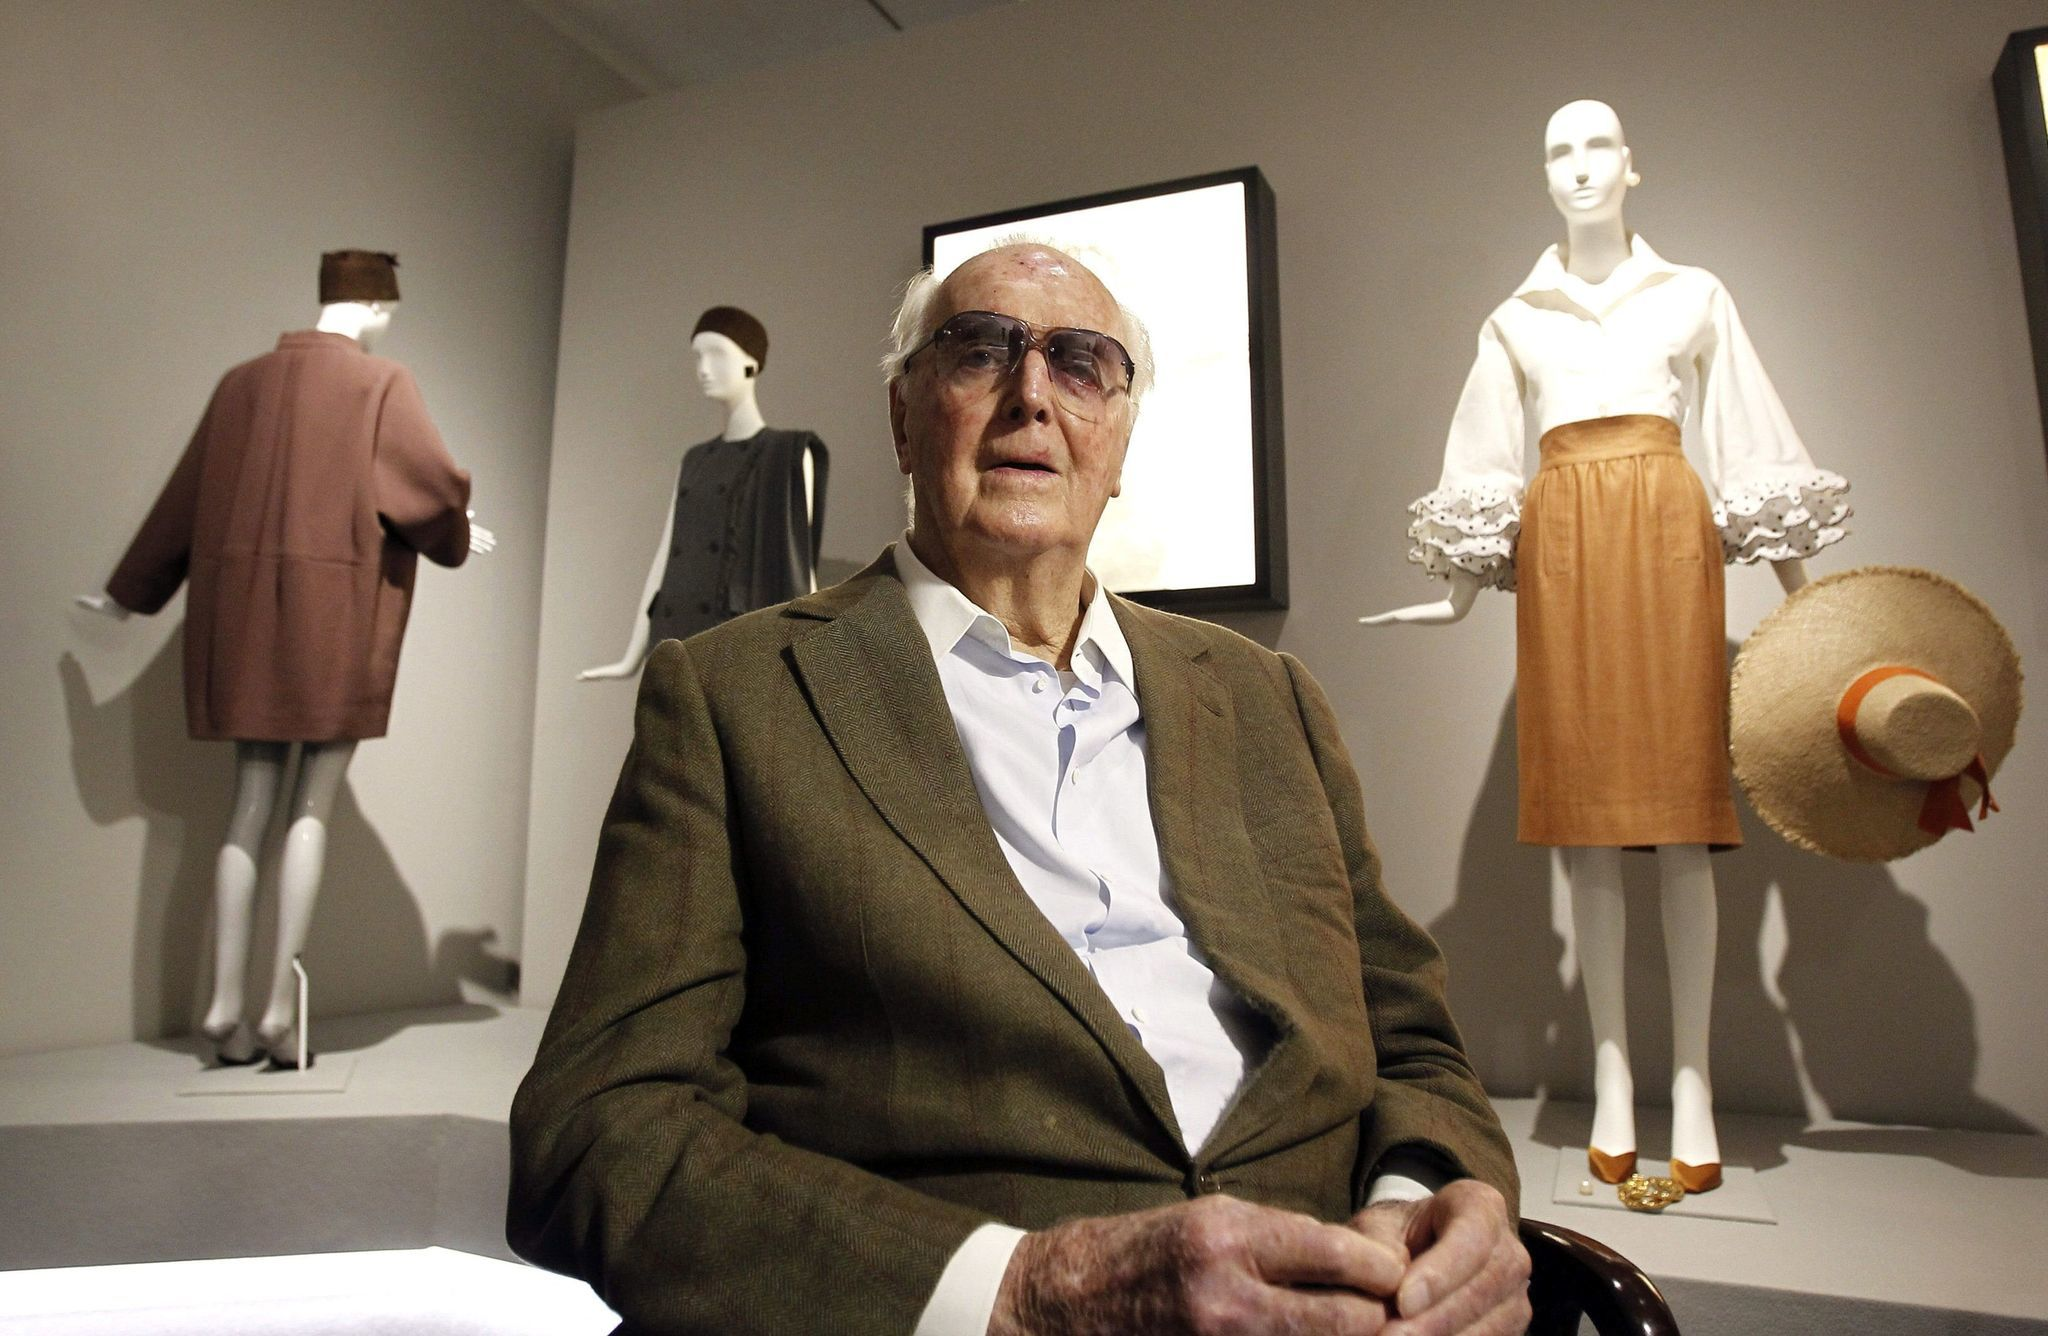 Hubert de Givenchy, French fashion designer: biography, personal life, career 44